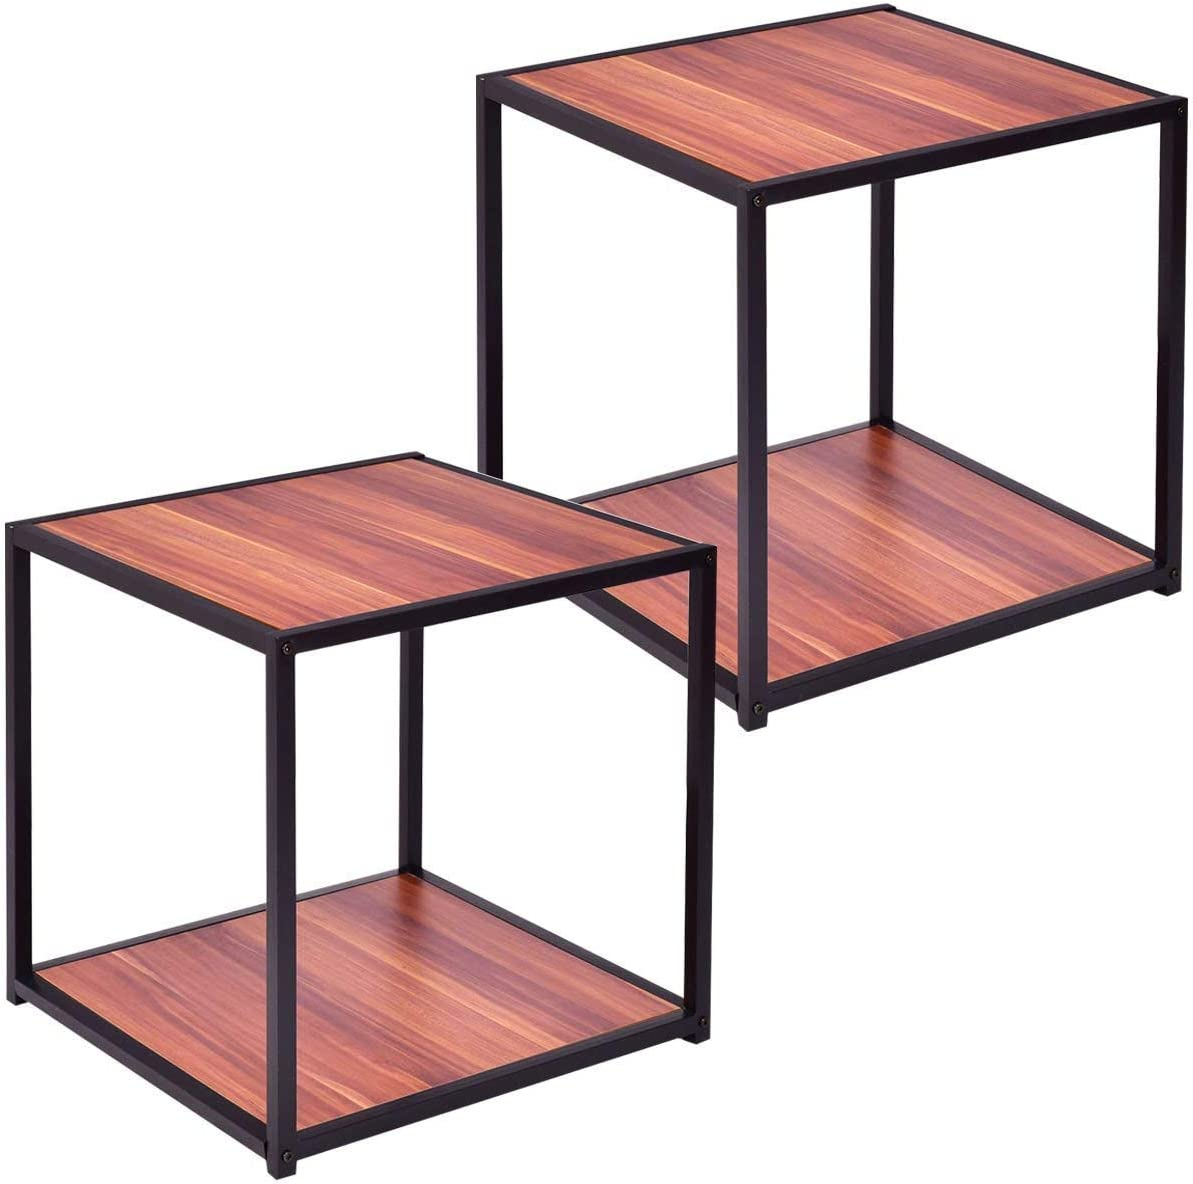 Casart End Table 20 inch Wood Square Sofa Couch Side Table Home Living Room Night Stand Snack Table End Coffee Table with Bottom Shelf 2